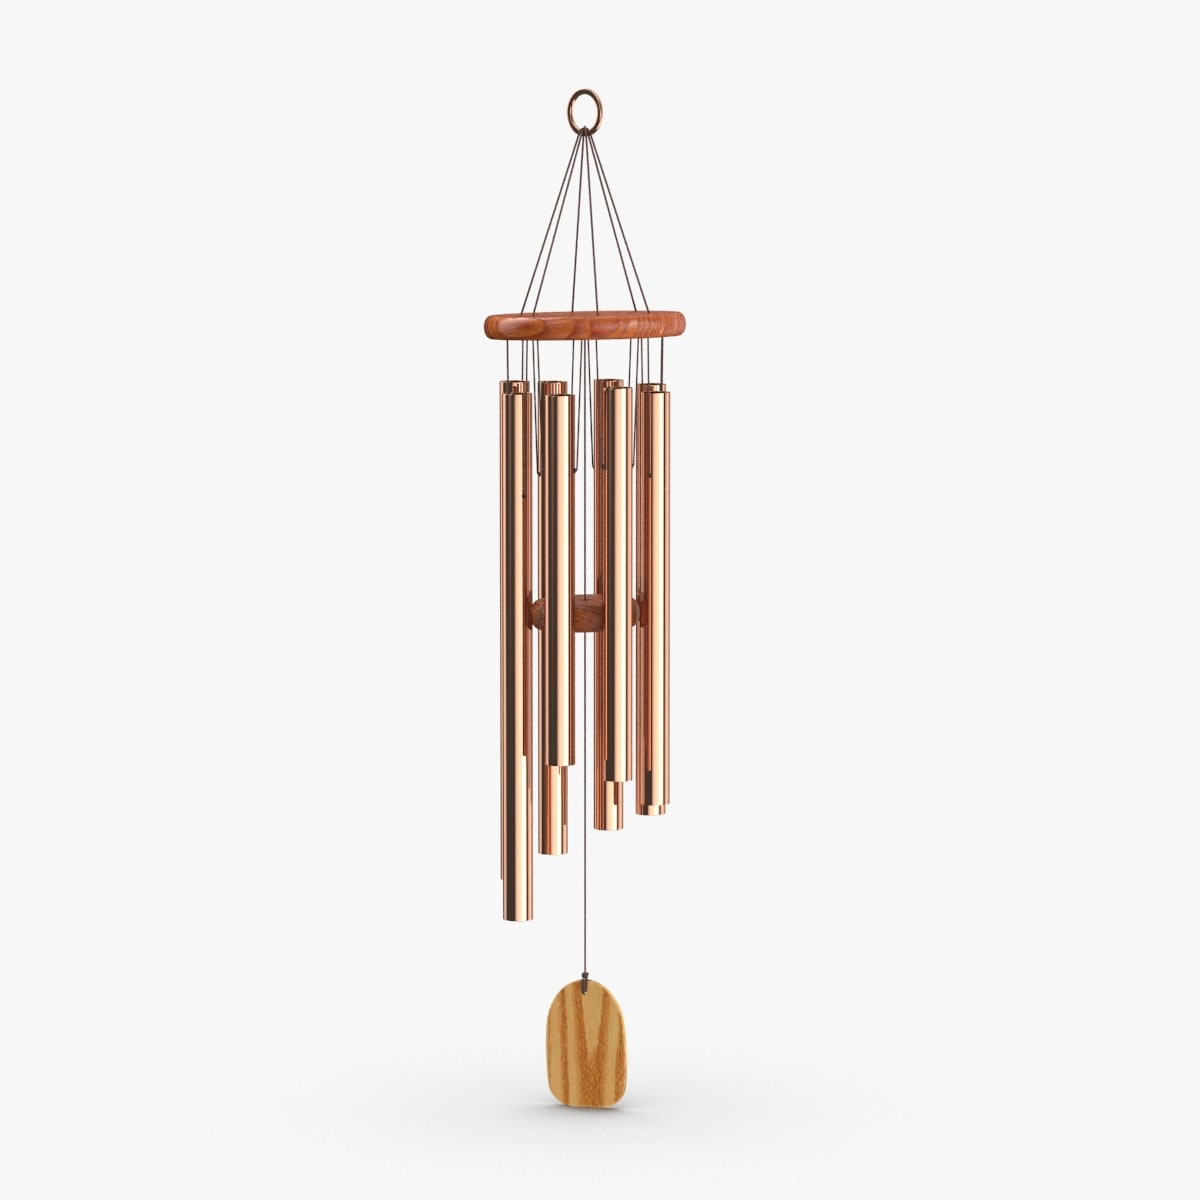 wind-chime-01 model